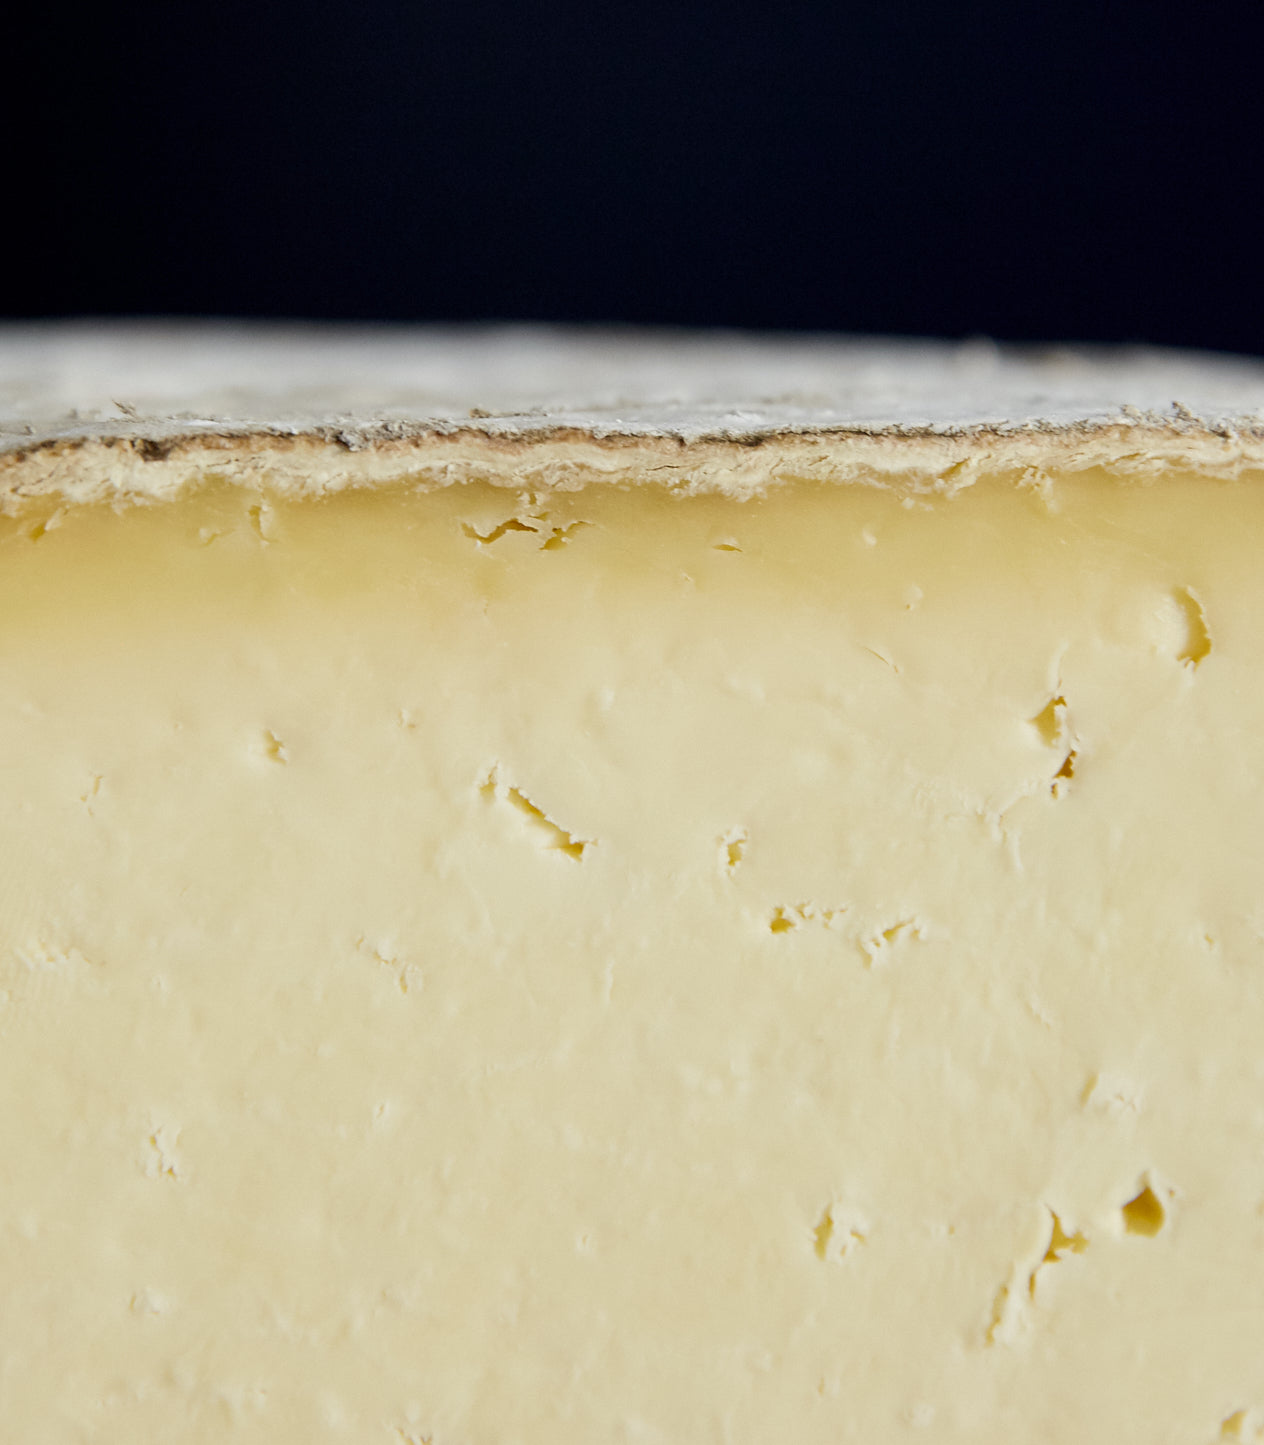 Close up of a cut piece of Gorwydd Caerphilly cheese showing well developed rind and creamy paste